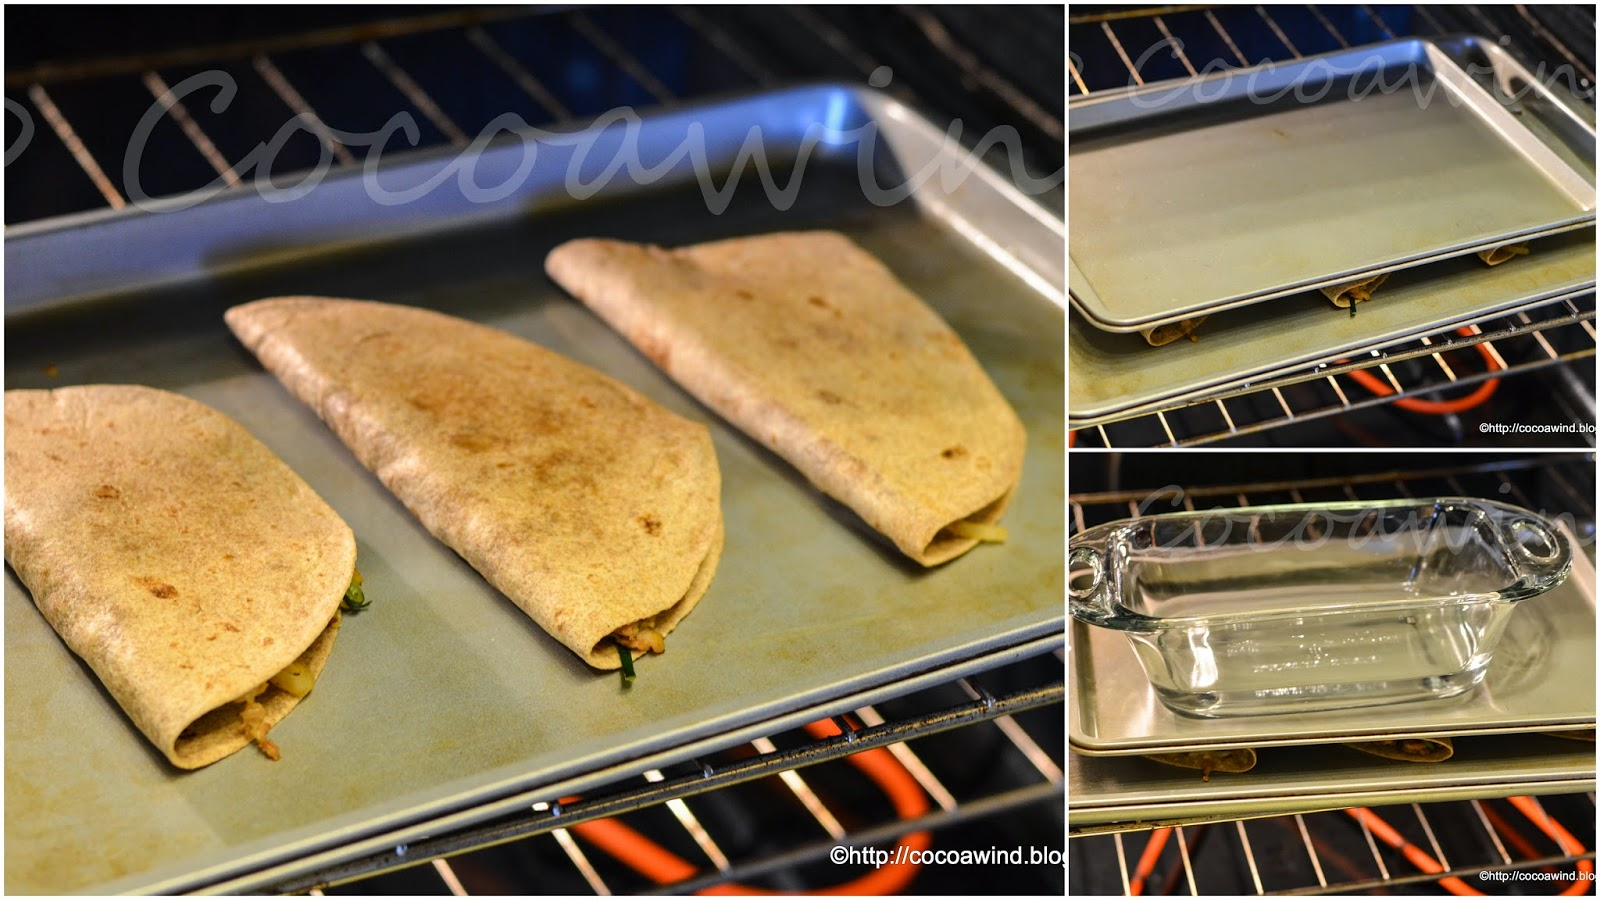 Oven-baked Whole wheat Chicken-Zucchini Quesadilla lookalikes